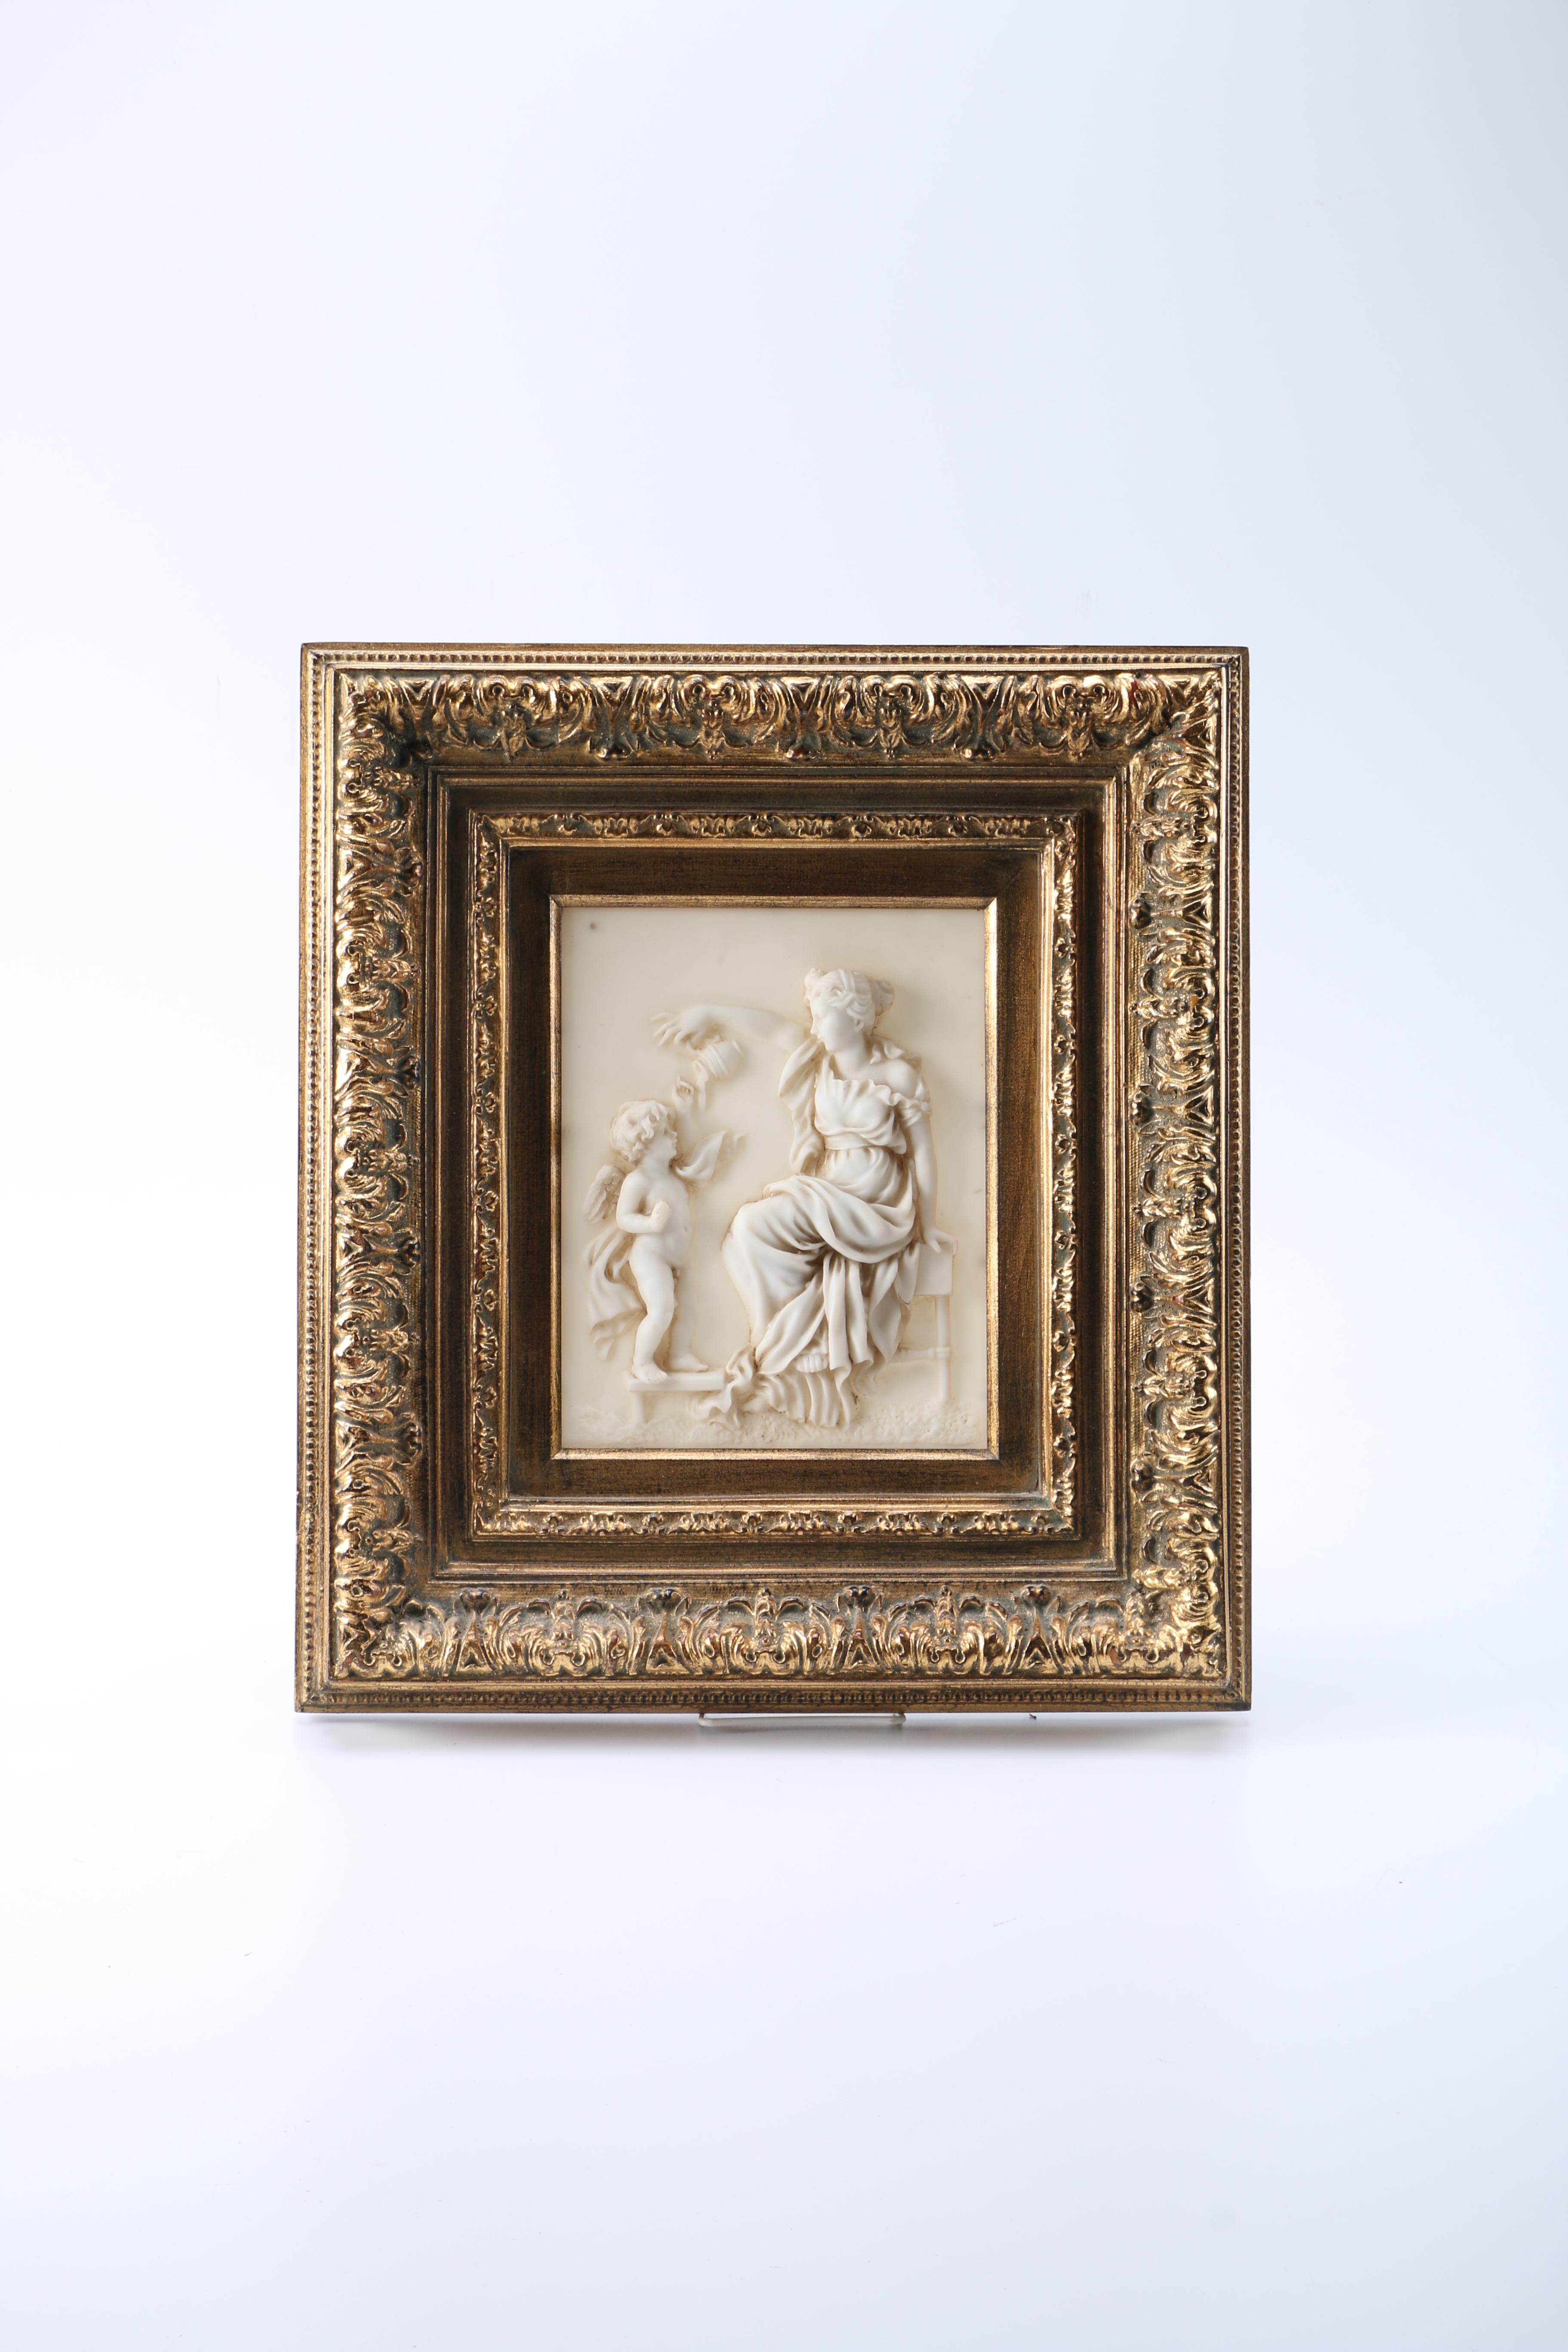 Neoclassical Resin Relief in an Ornate Foliate Frame